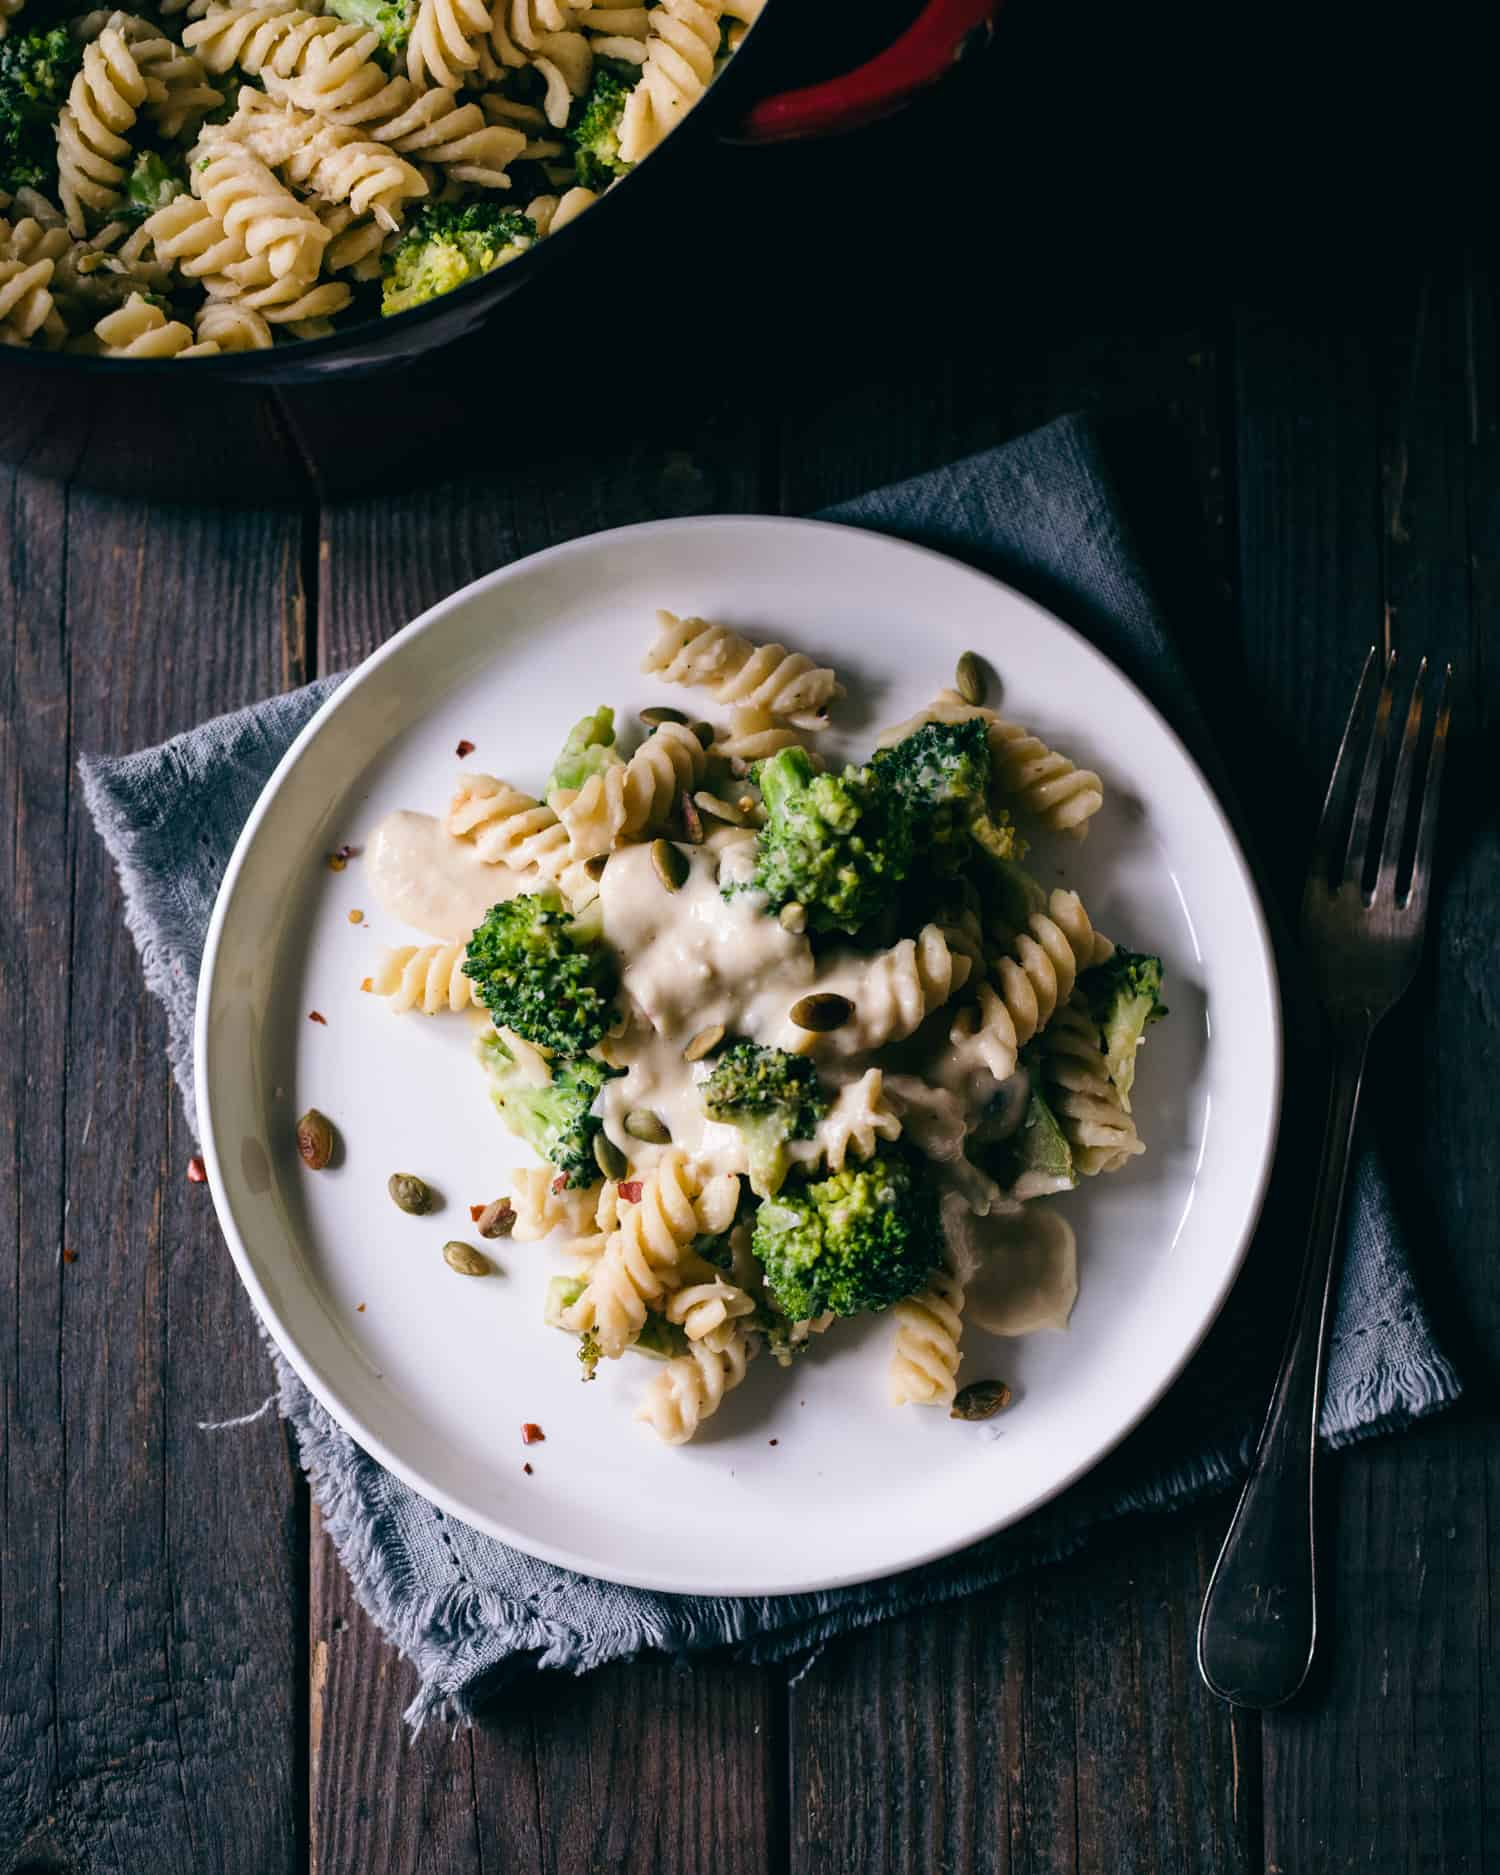 Pasta with broccoli on a plate.